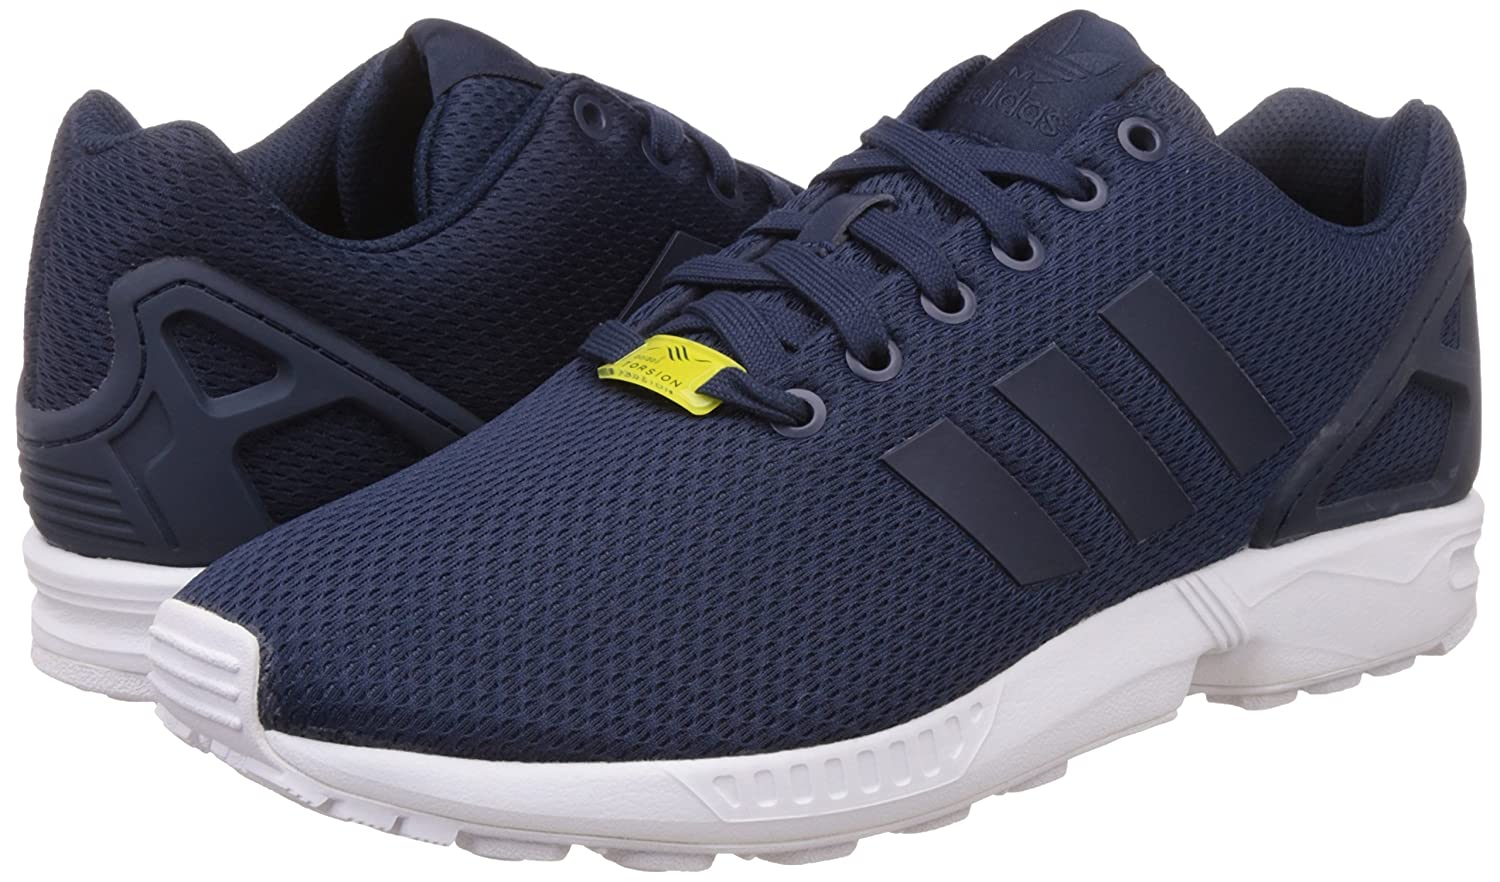 Adidas ZX Flux, Zapatillas Unisex Adulto 37 1/3 EU|Multicolor (Azul Marino/Blanco)